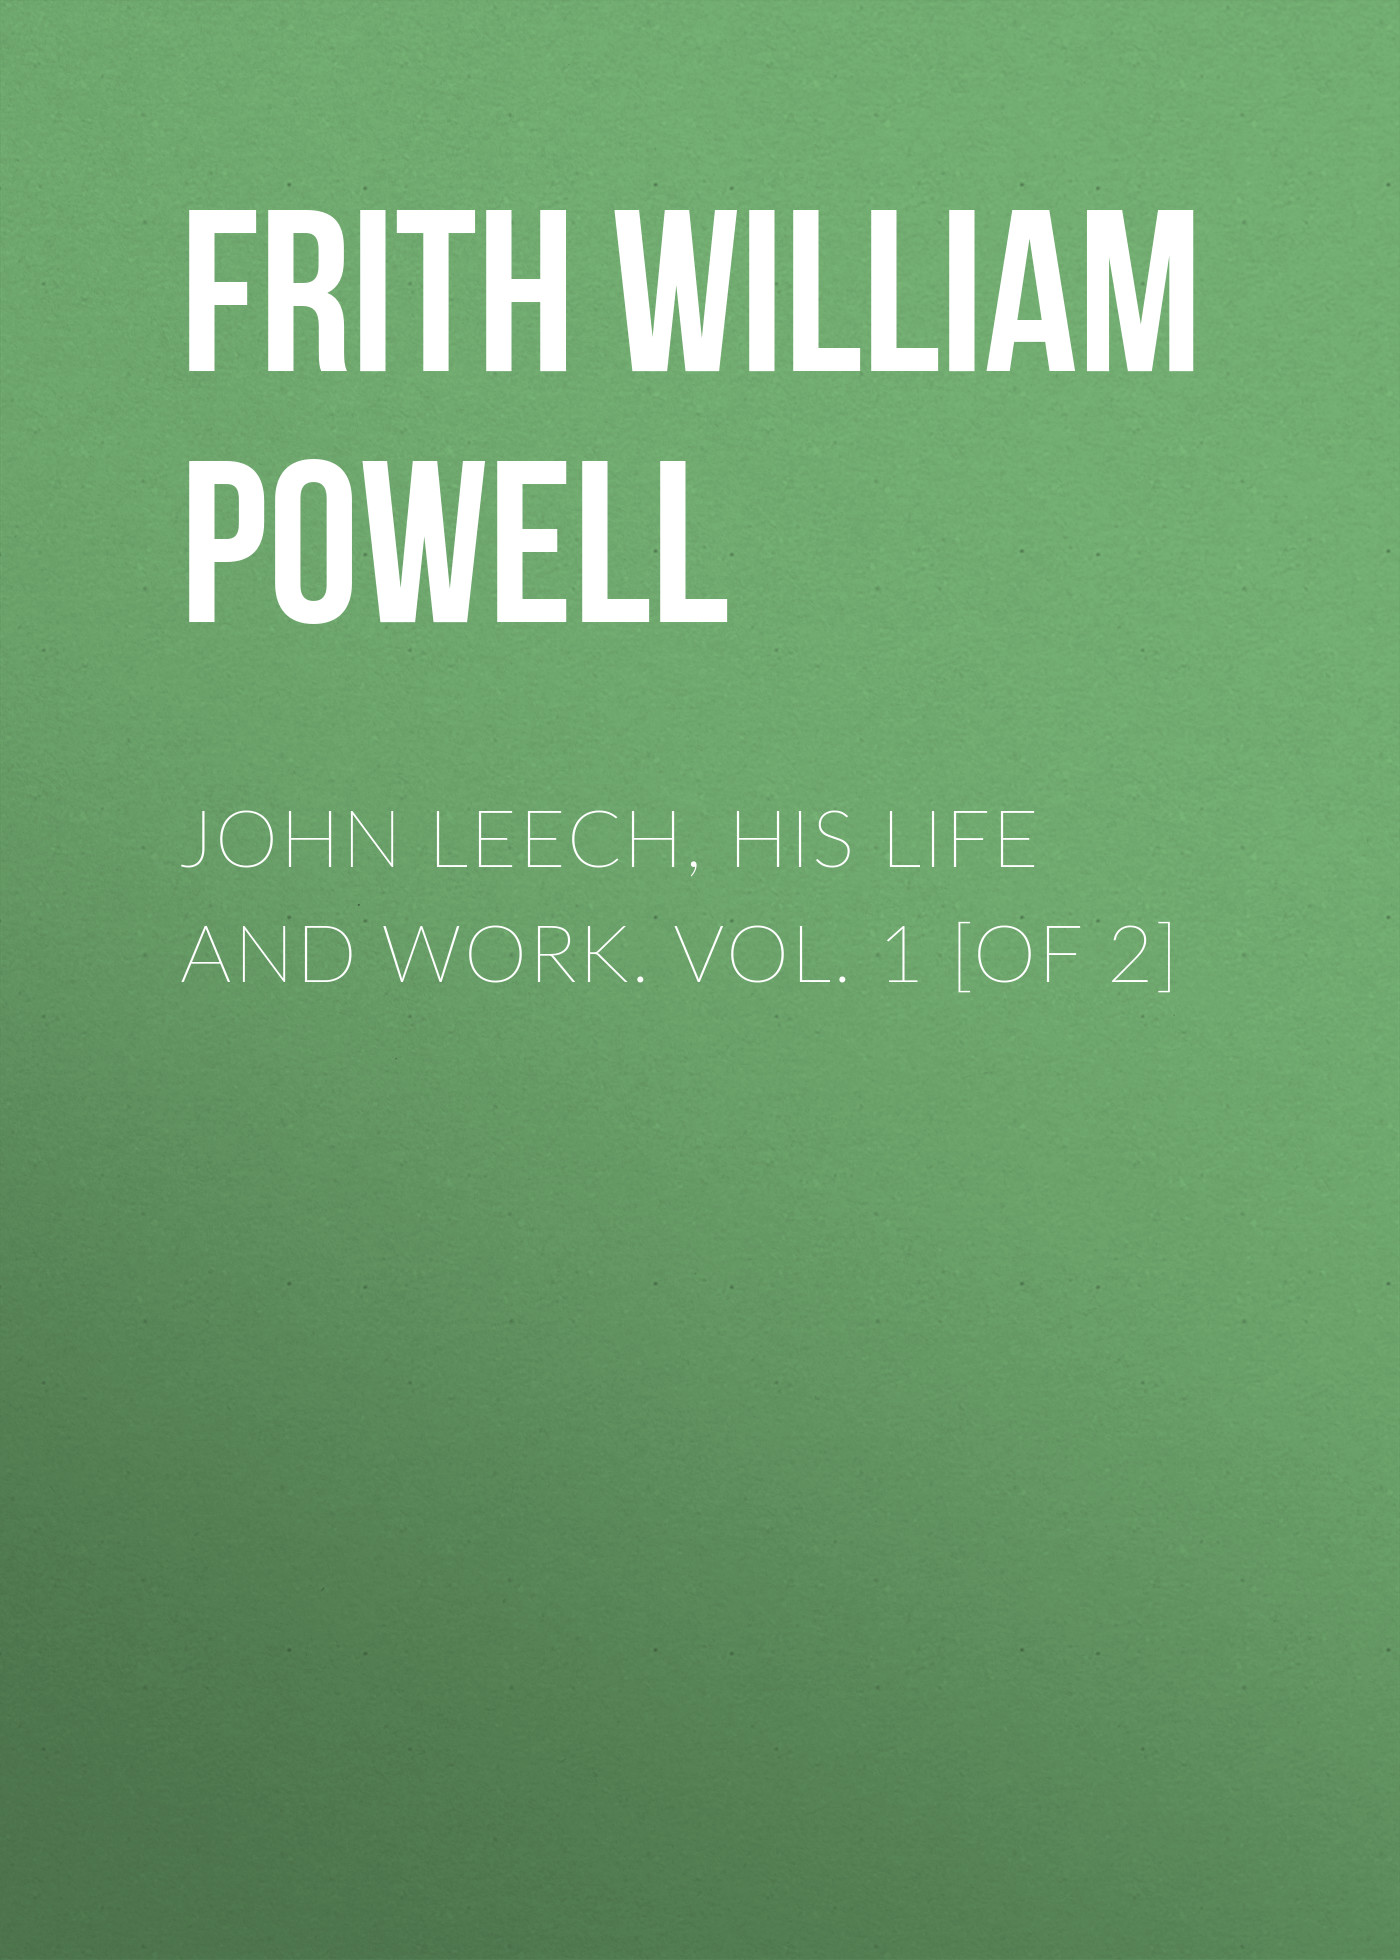 Frith William Powell John Leech, His Life and Work. Vol. 1 [of 2] frith alison abc of headache